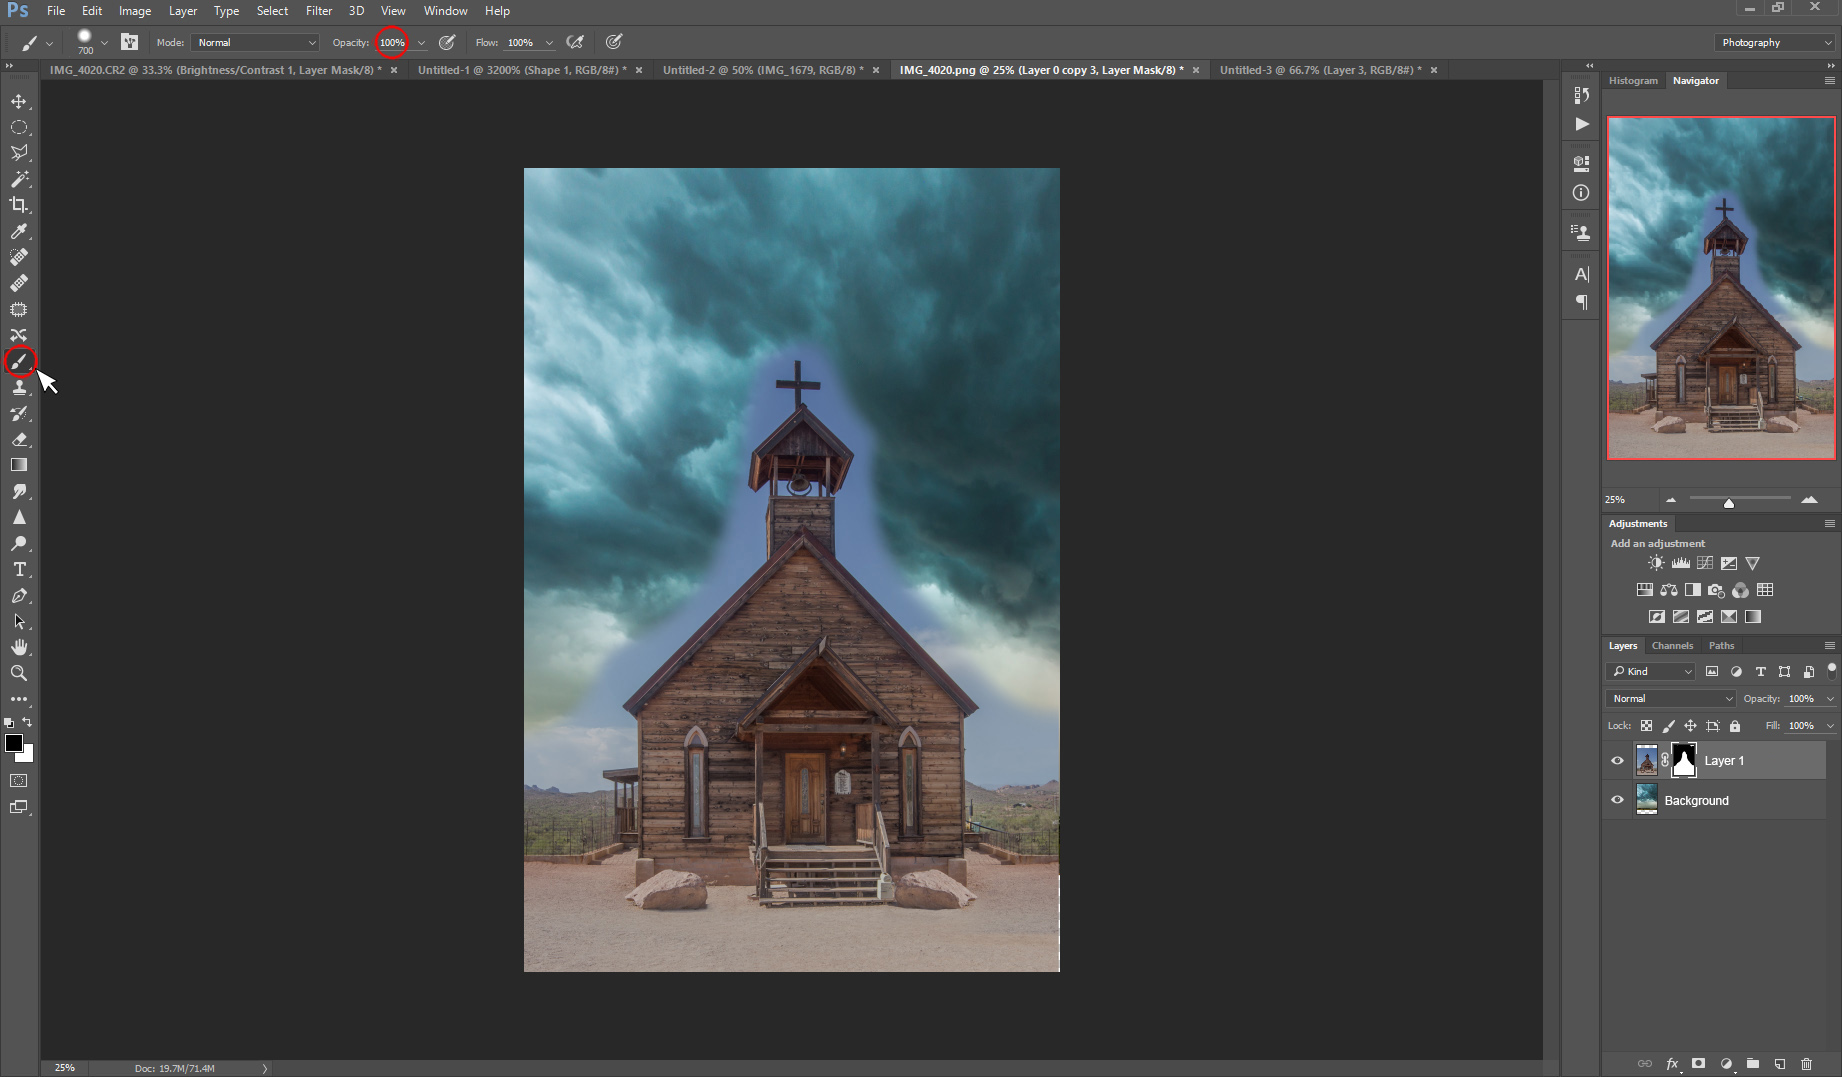 Select the brush tool at 100% Opacity and use it to roughly mask out the blue sky around the church.